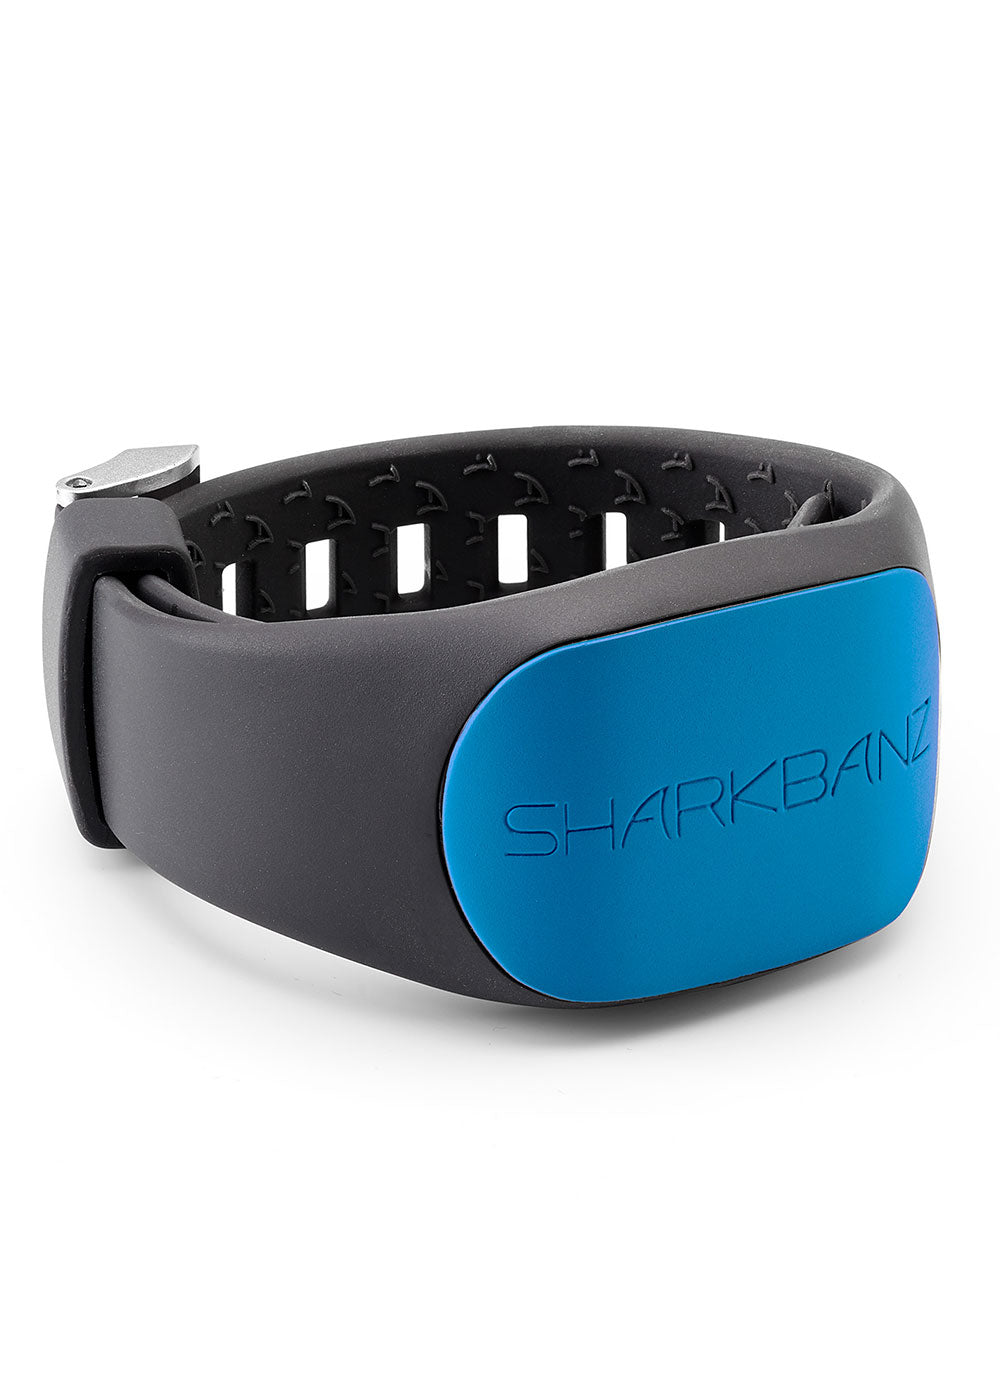 Sharkbanz 2.0 Shark Deterrent Band - Slate/Azure - Buy online with Adreno Scuba Diving